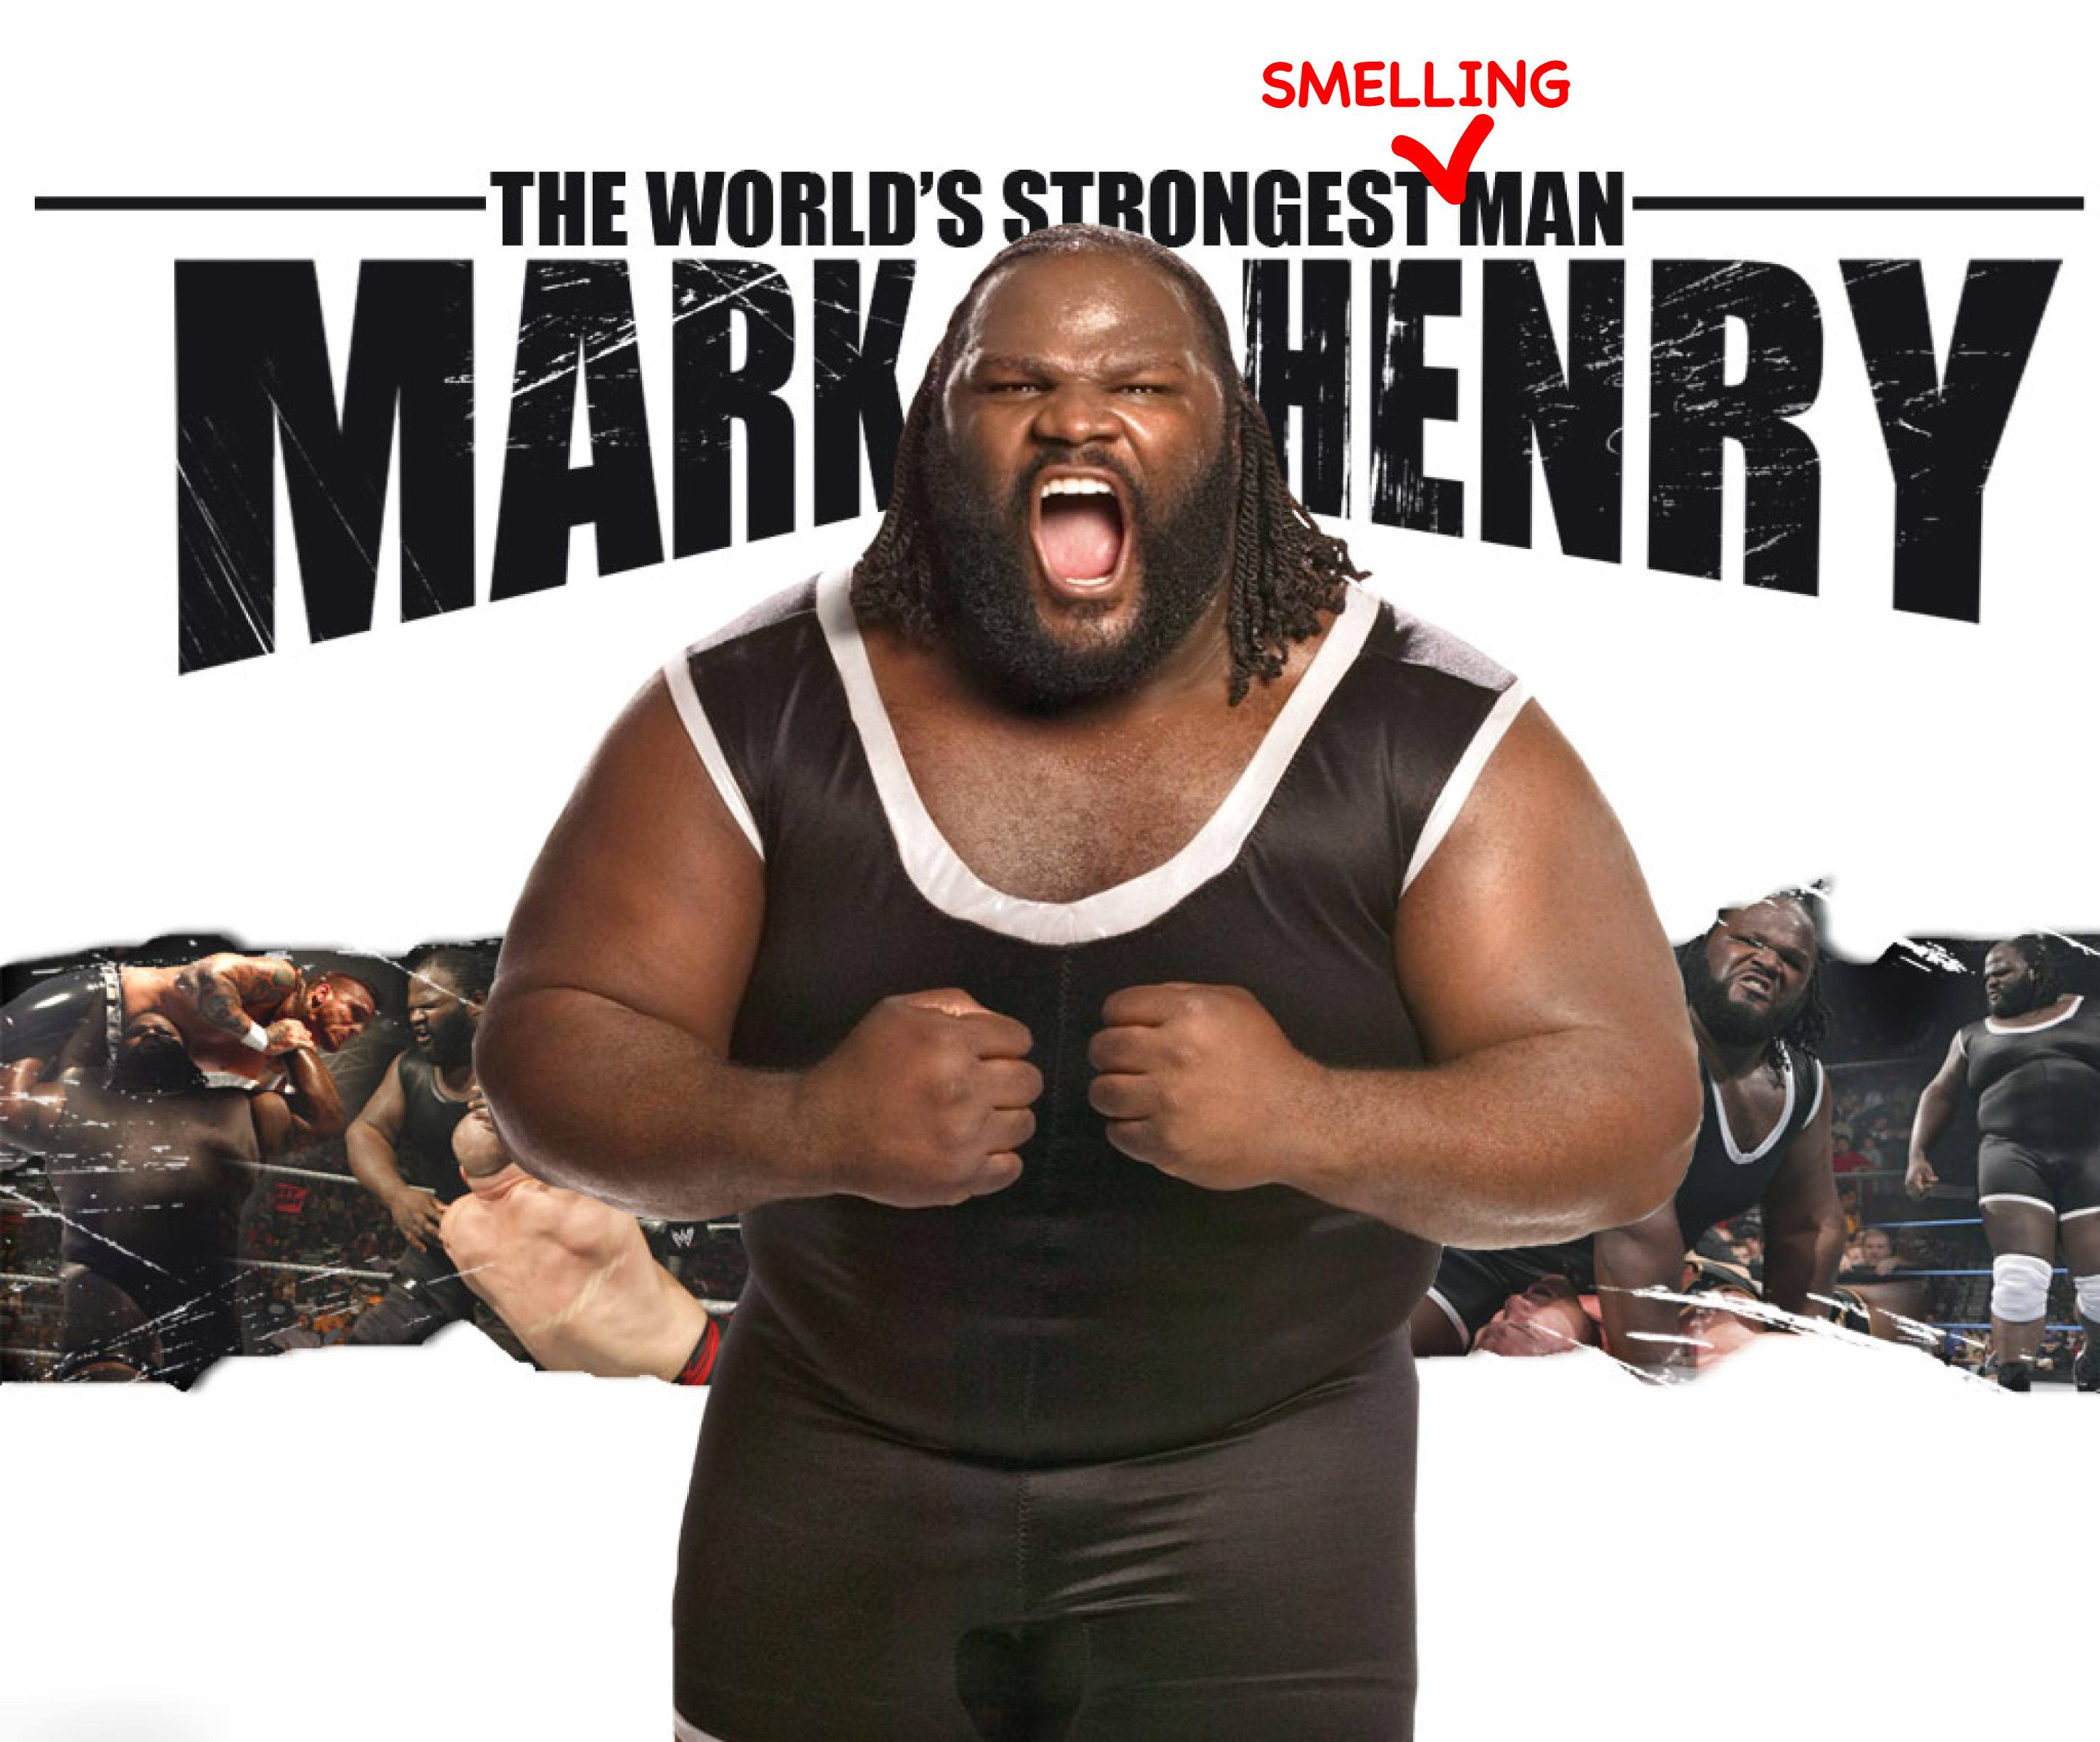 Mark Henry is also World's Strongest Smelling Man ...